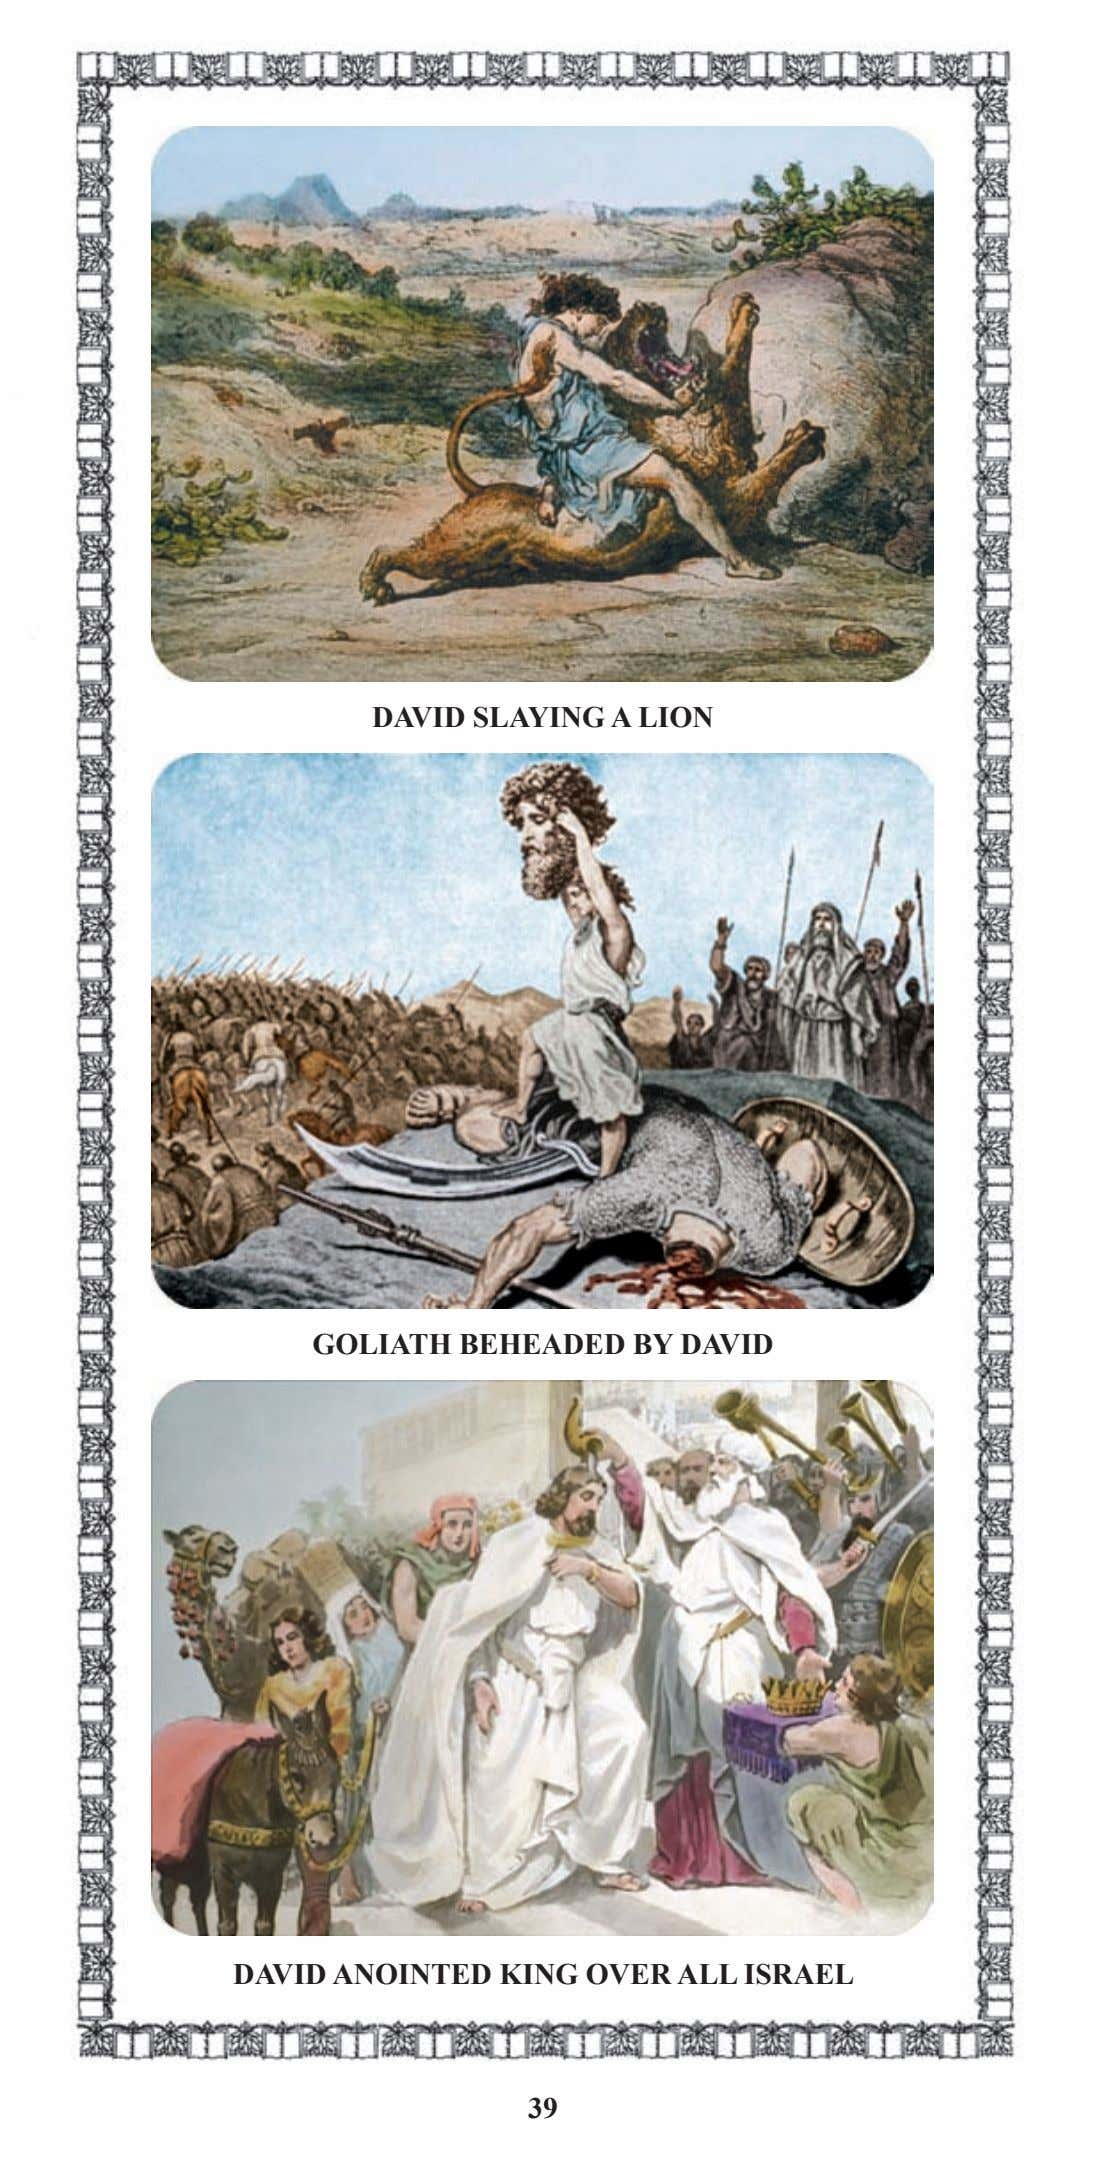 DAVID SLAYING A LION GOLIATH BEHEADED BY DAVID DAVID ANOINTED KING OVER ALL ISRAEL 39